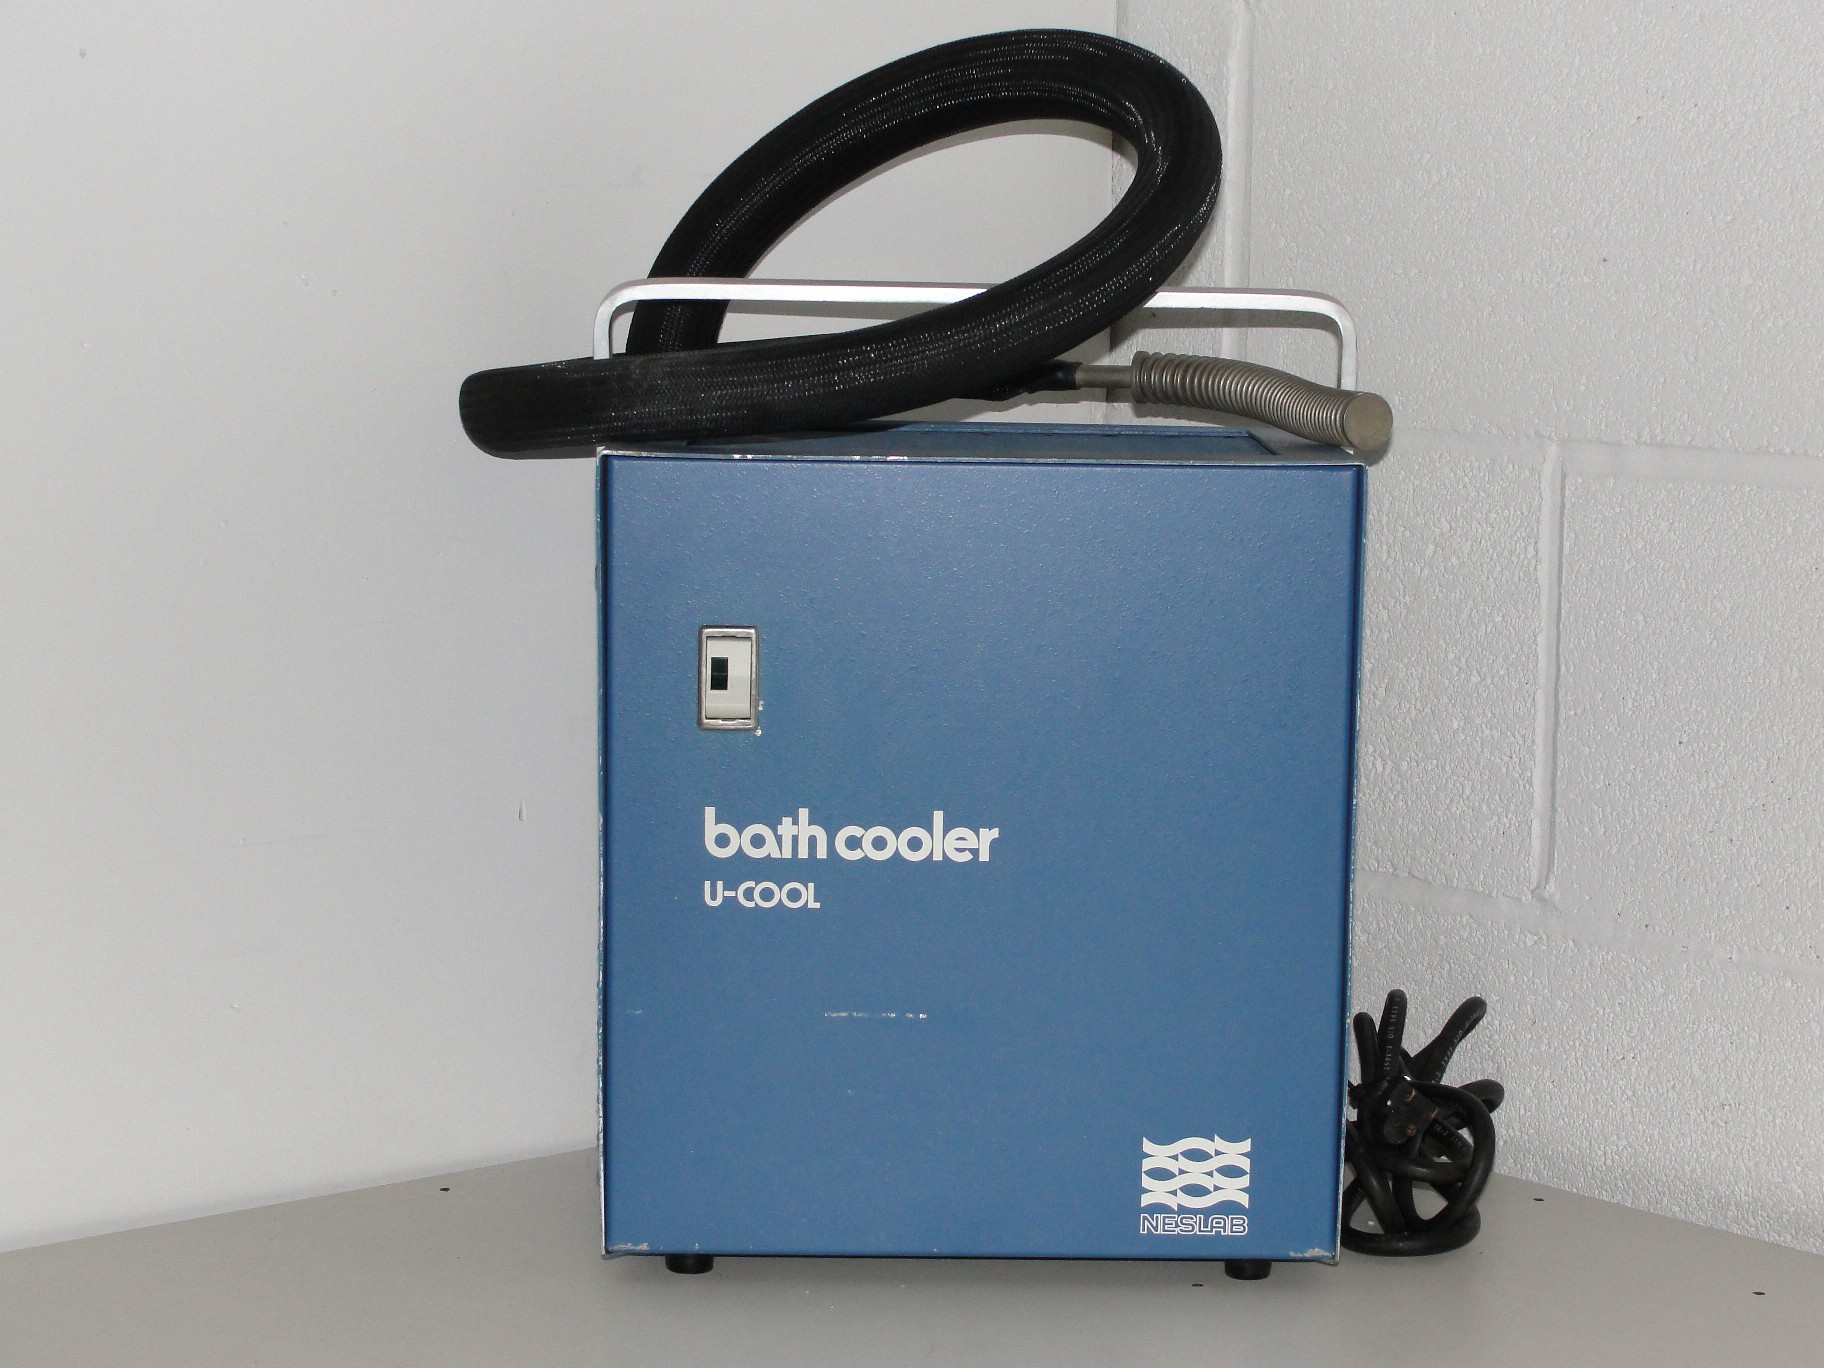 Neslab Bath Cooler U-Cool Image